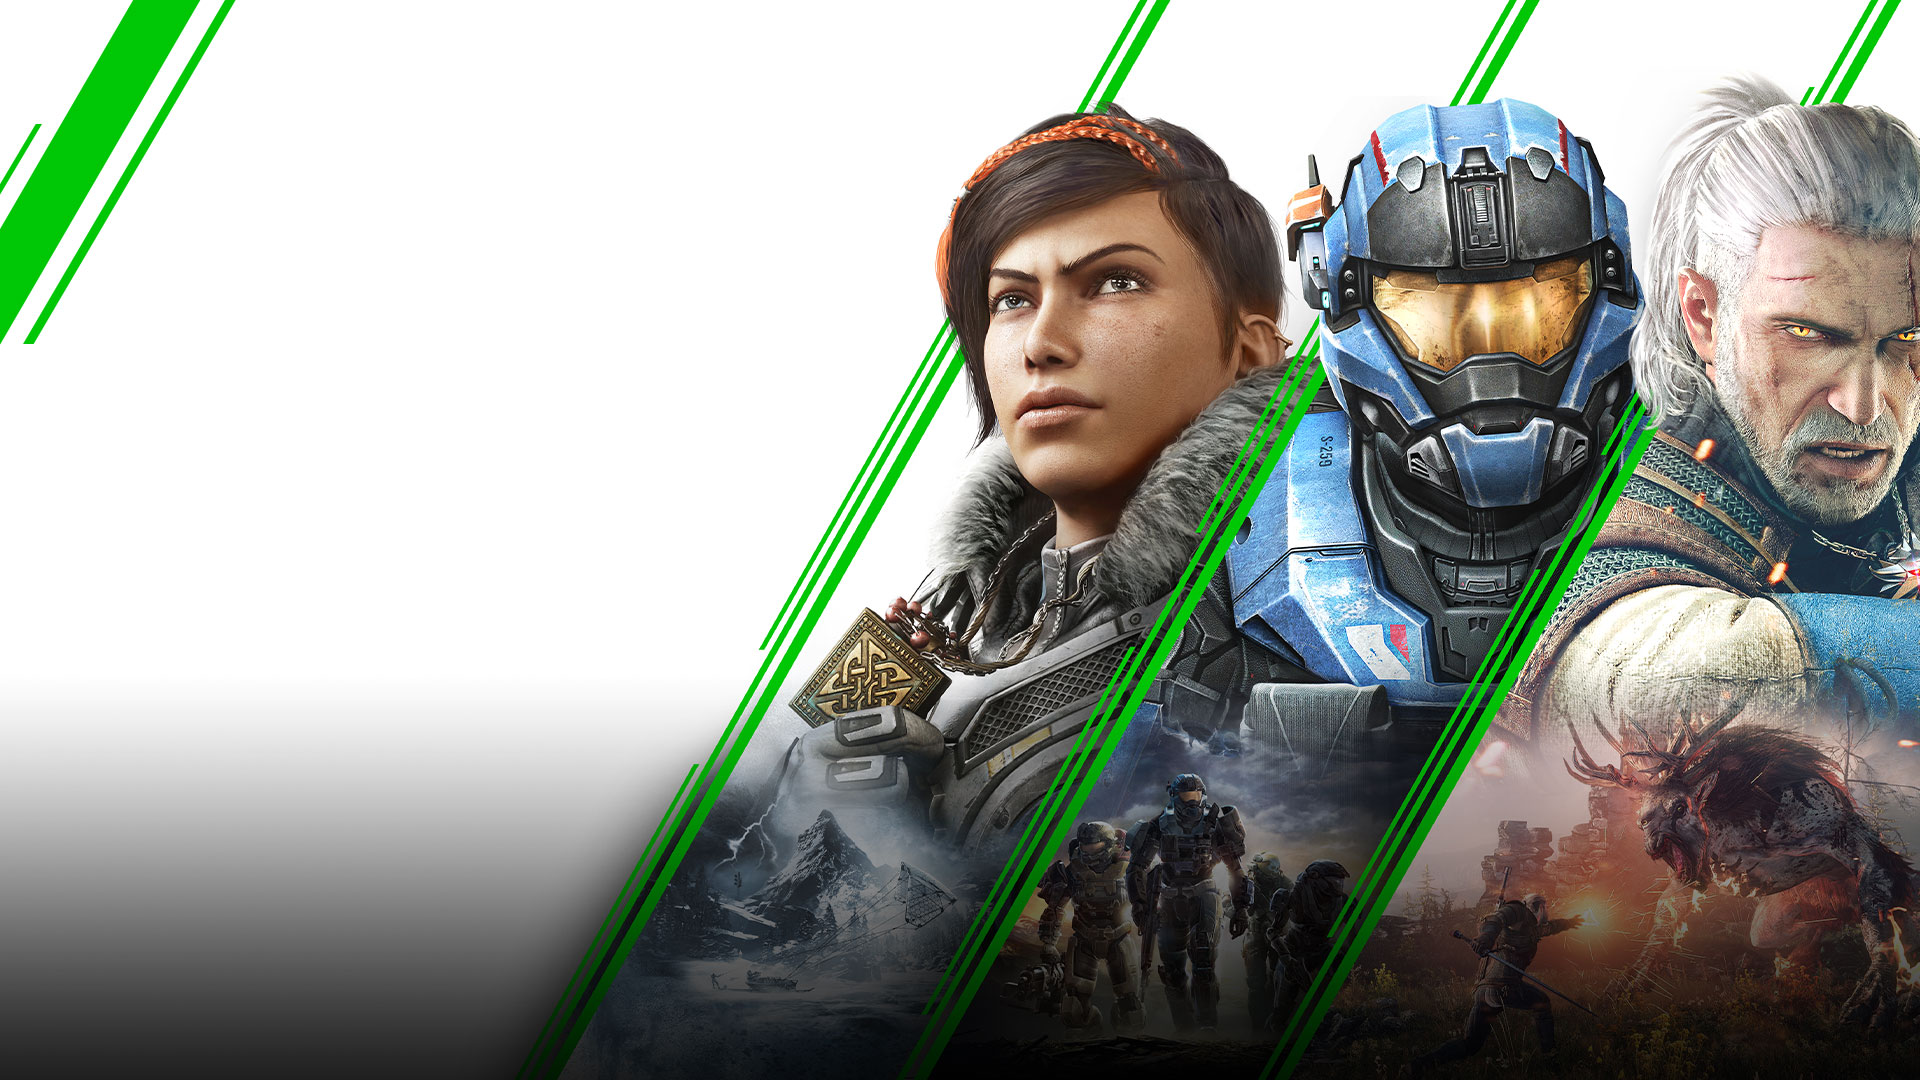 Stylized green diagonal lines separating Kait Diaz, Master Chief, and The Witcher